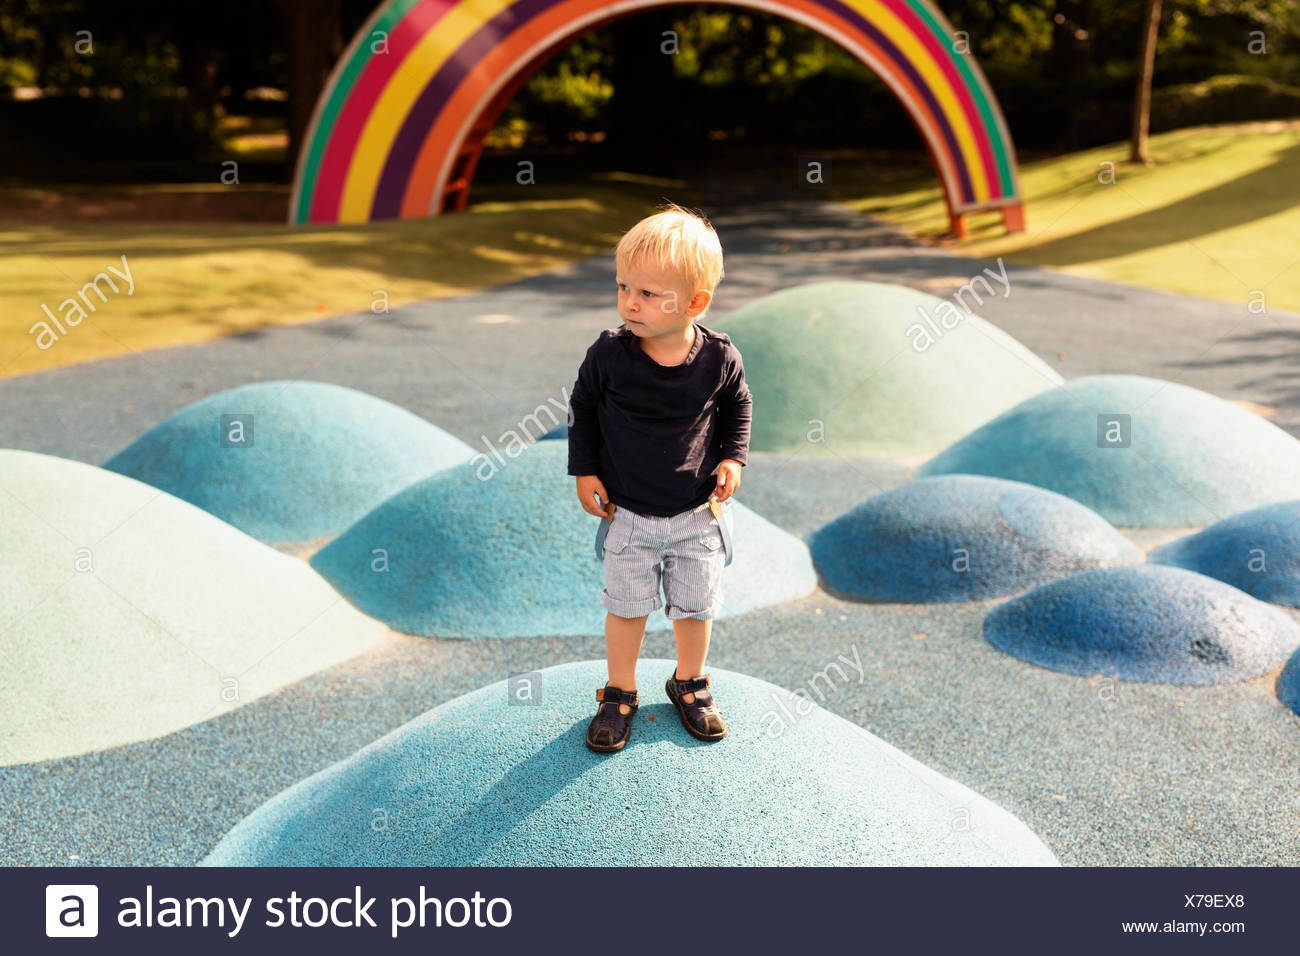 Full length of boy standing on artificial hill in playground - Stock Image